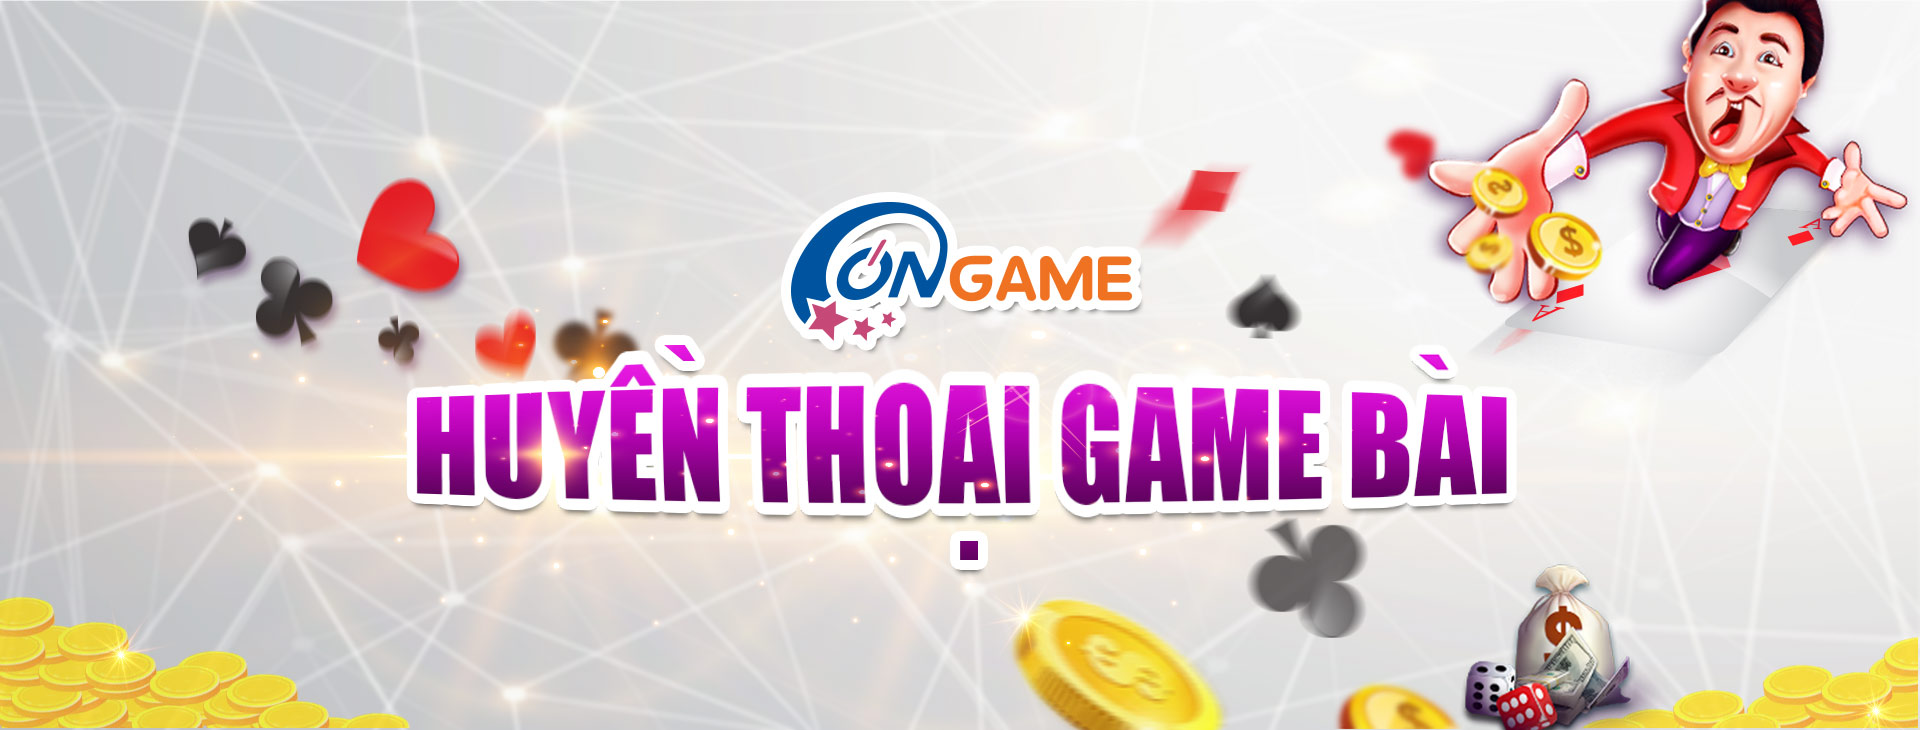 http://ongame.vn/